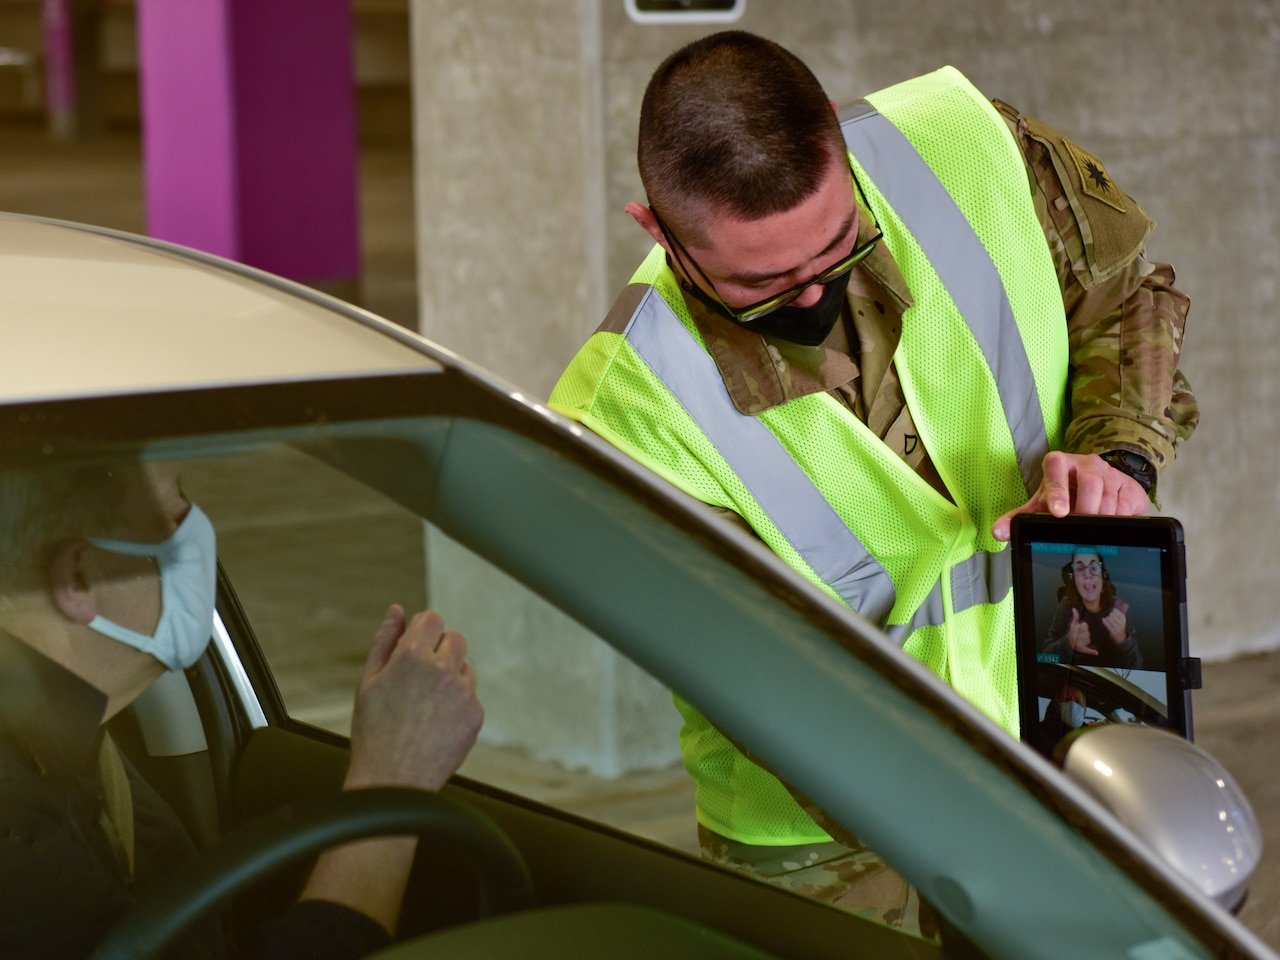 A man in a military uniform holds a computer tablet and shows it to a man in the driver's seat of an automobile.